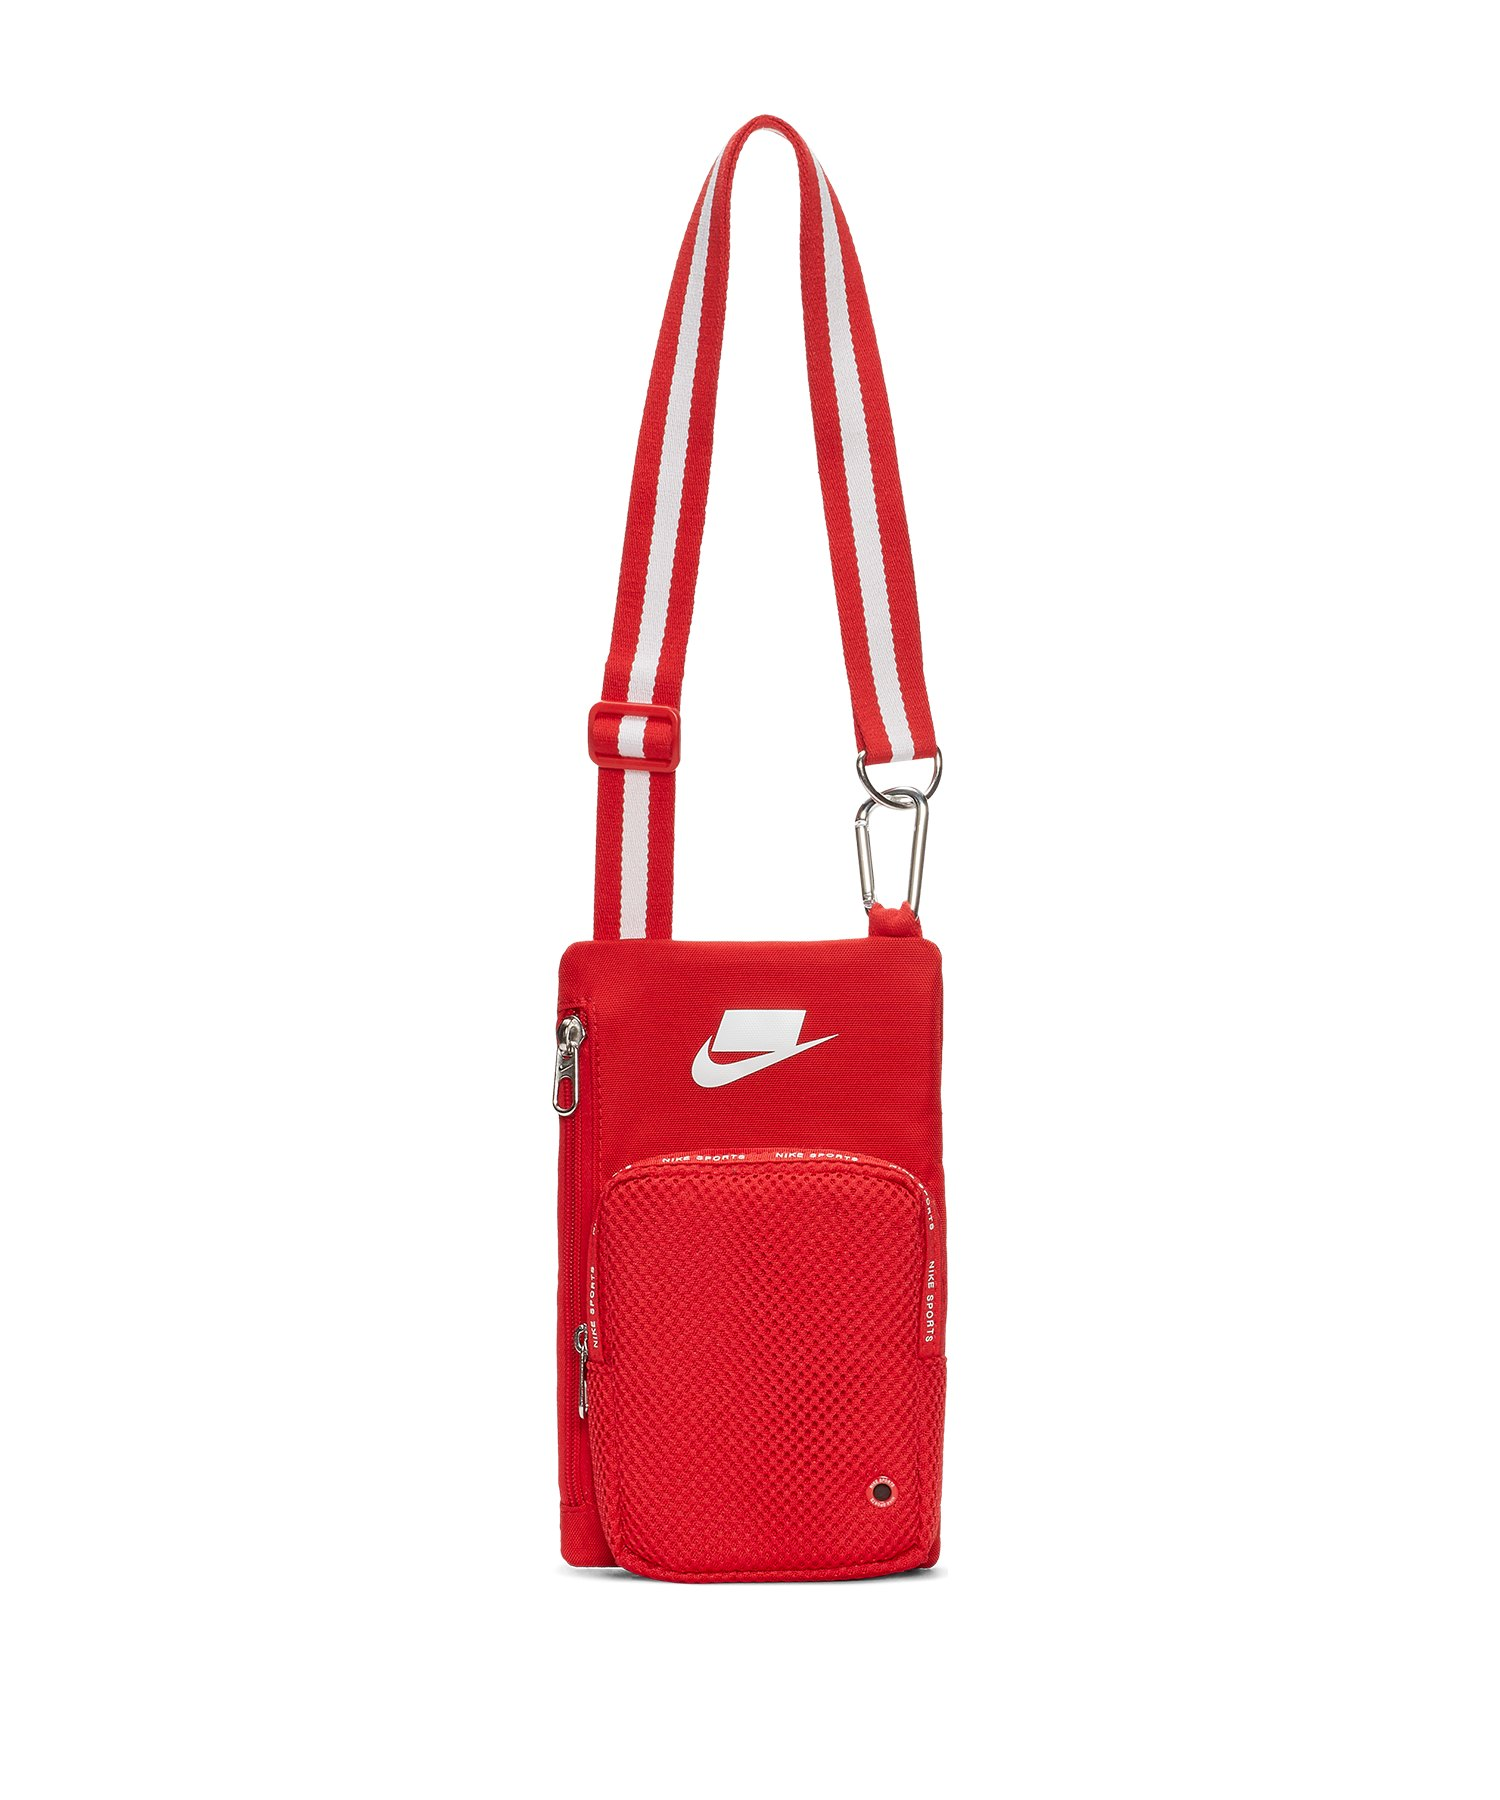 Nike Items Bag Tasche Rot F657 - rot